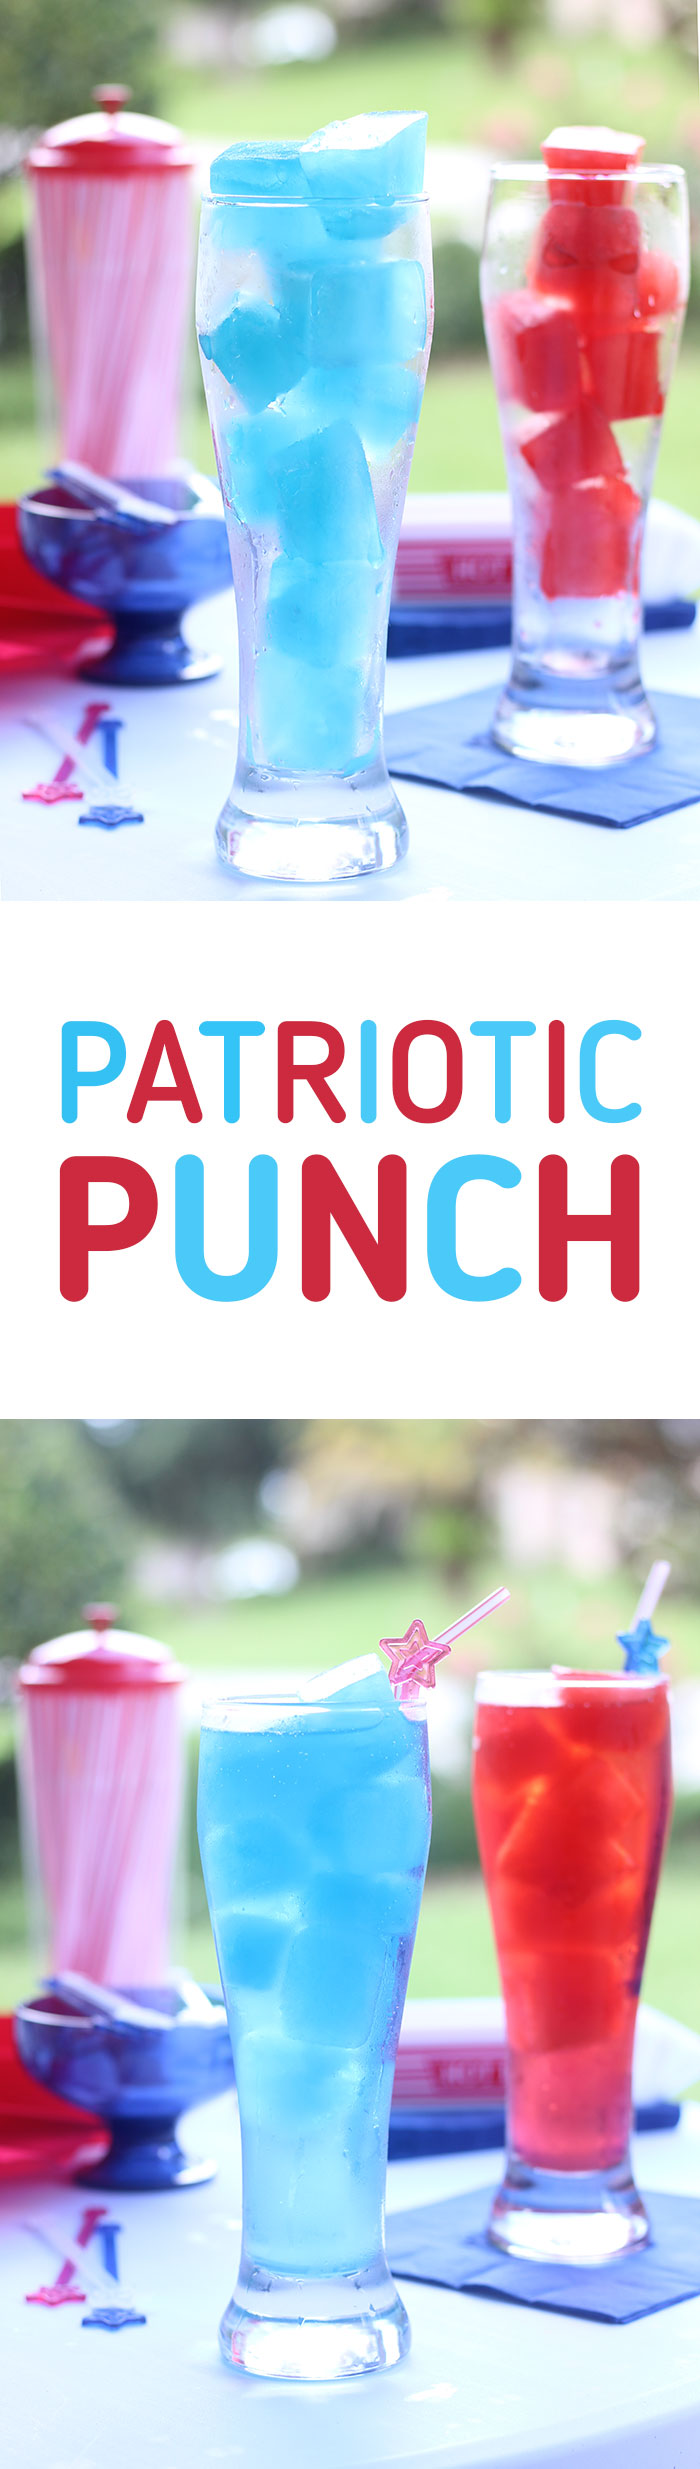 Patriotic Punch - kid friendly. Make colorful juice ice cubes and just add soda for the perfect and simple Labor day recipe.